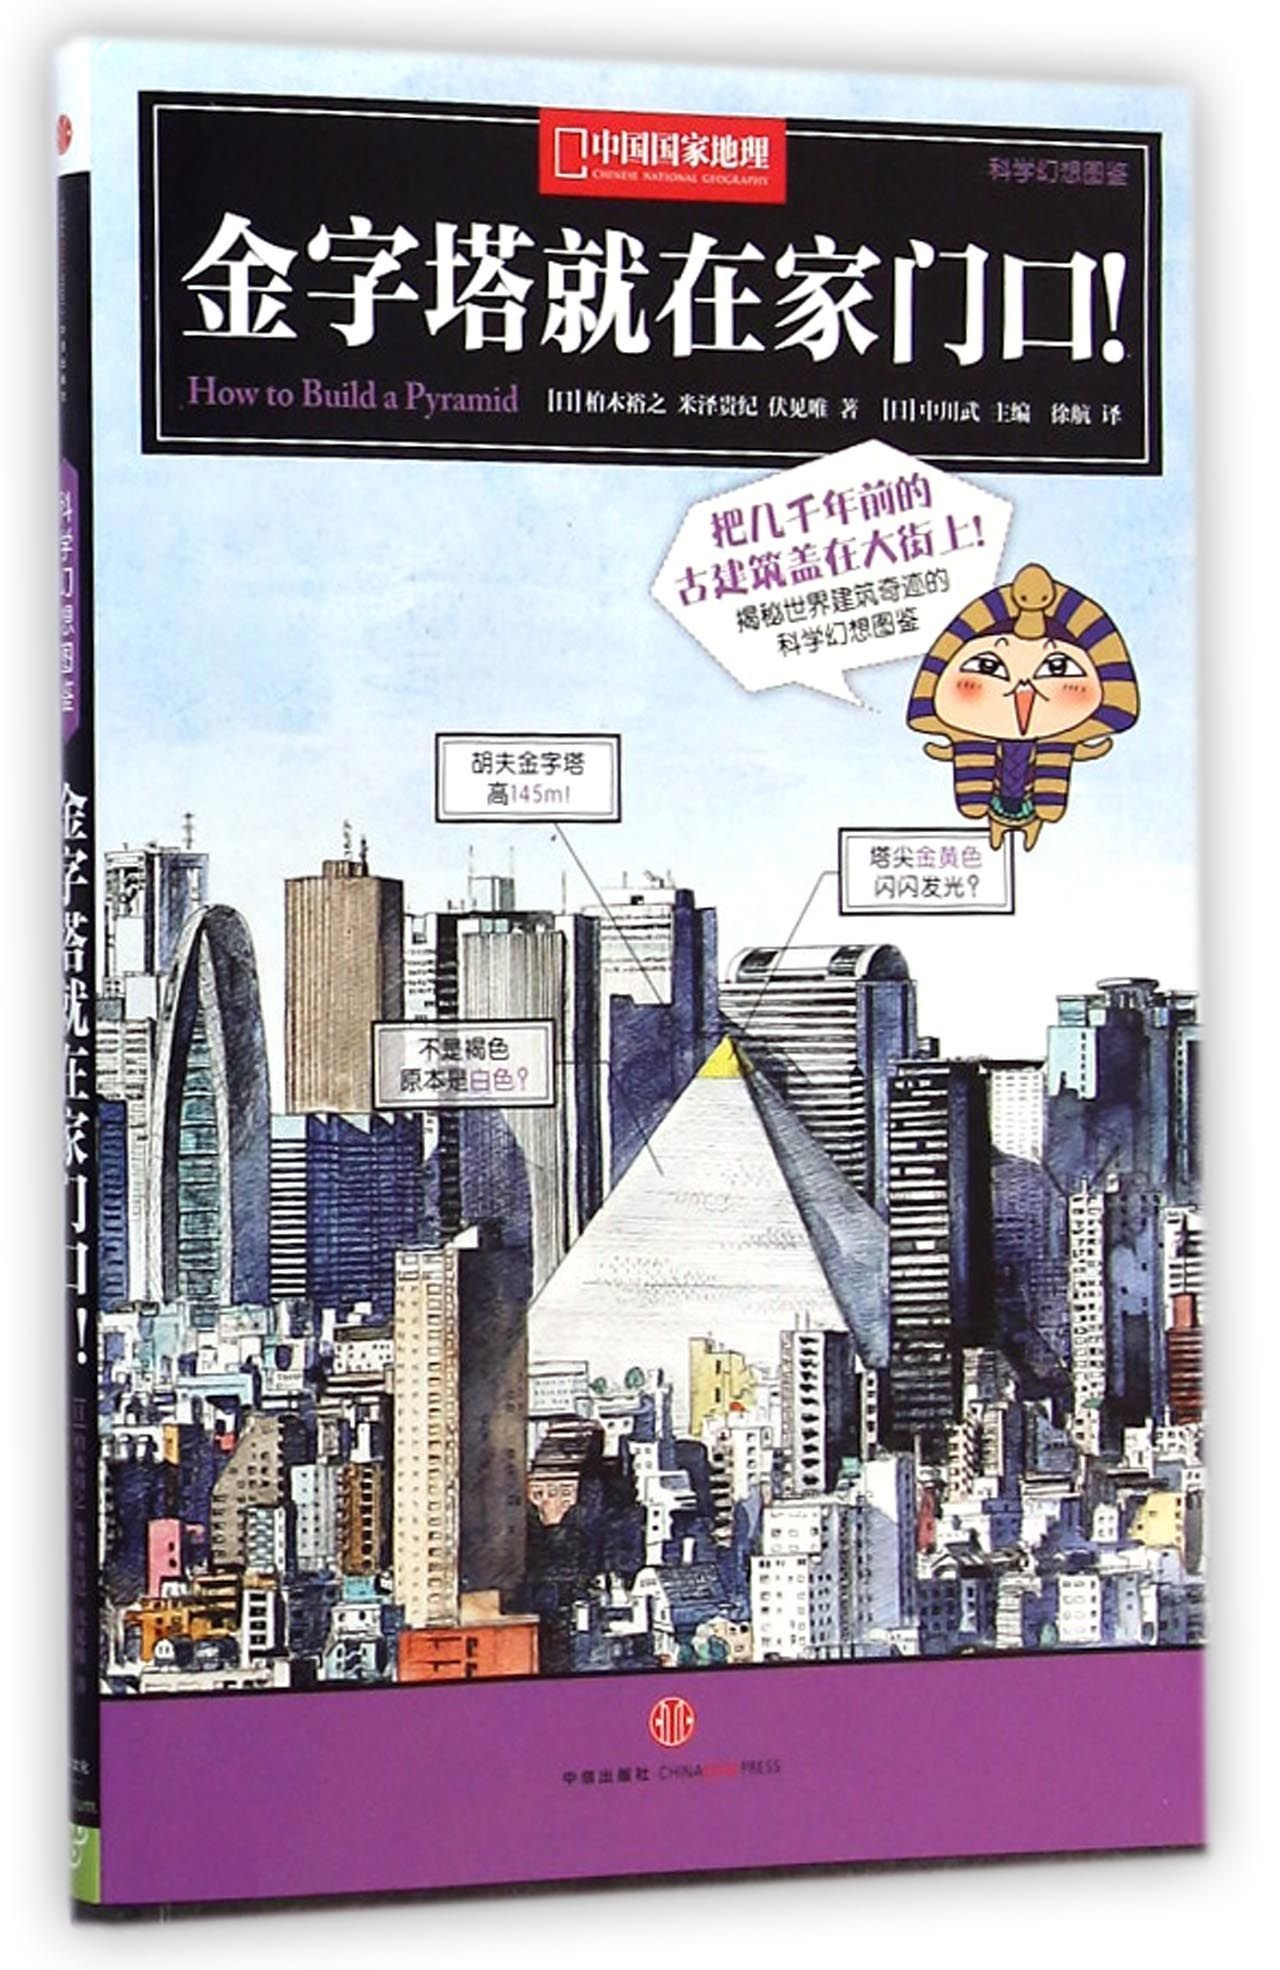 Read Online How to Build A Pyramid (The Science-fiction Illstrations of Chinese National Geography) (Chinese Edition) ebook